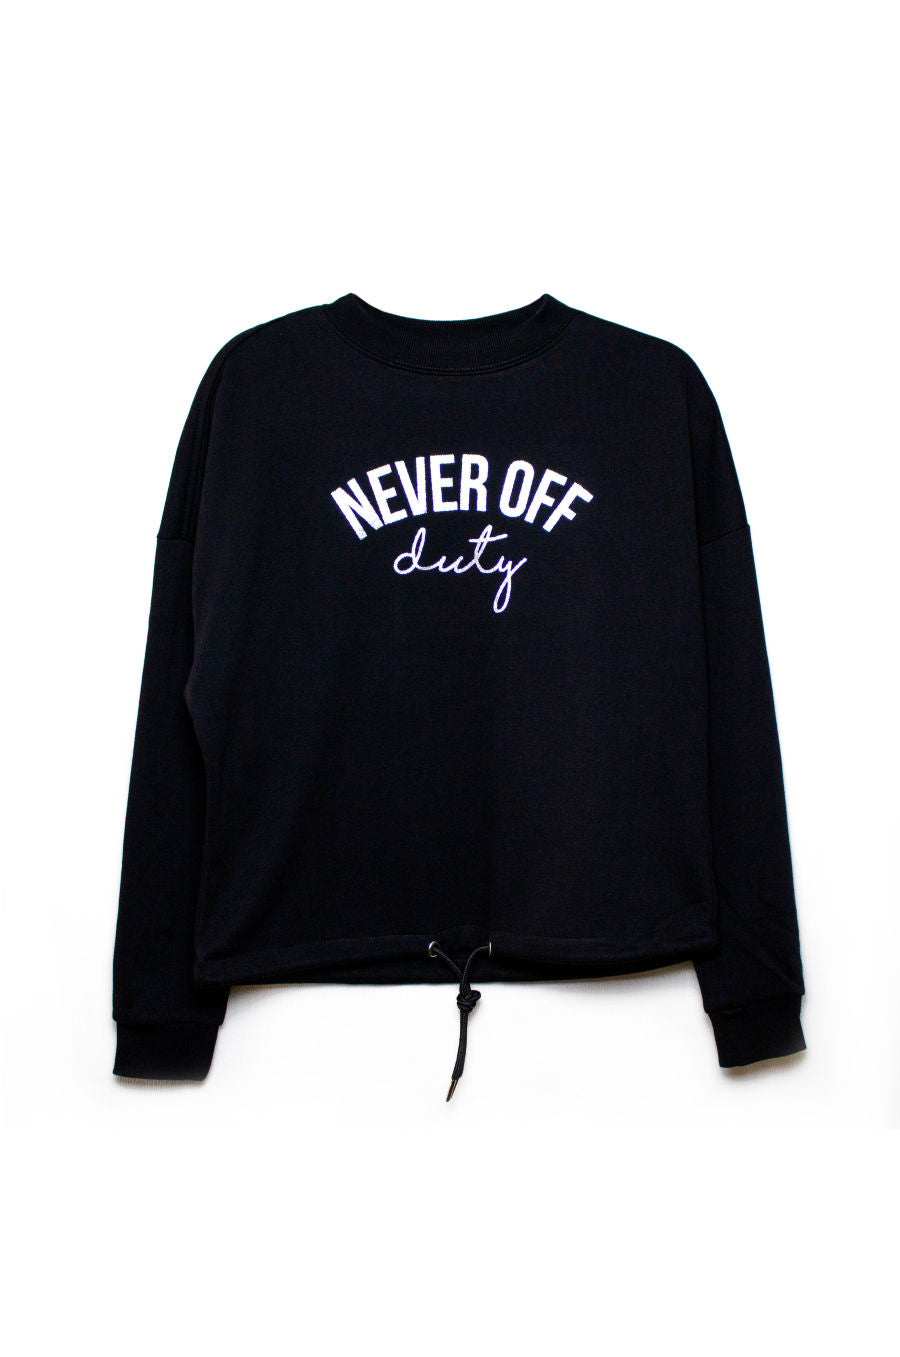 Black and silver crew neck Never Off Duty Sweatshirt by Mama Life London